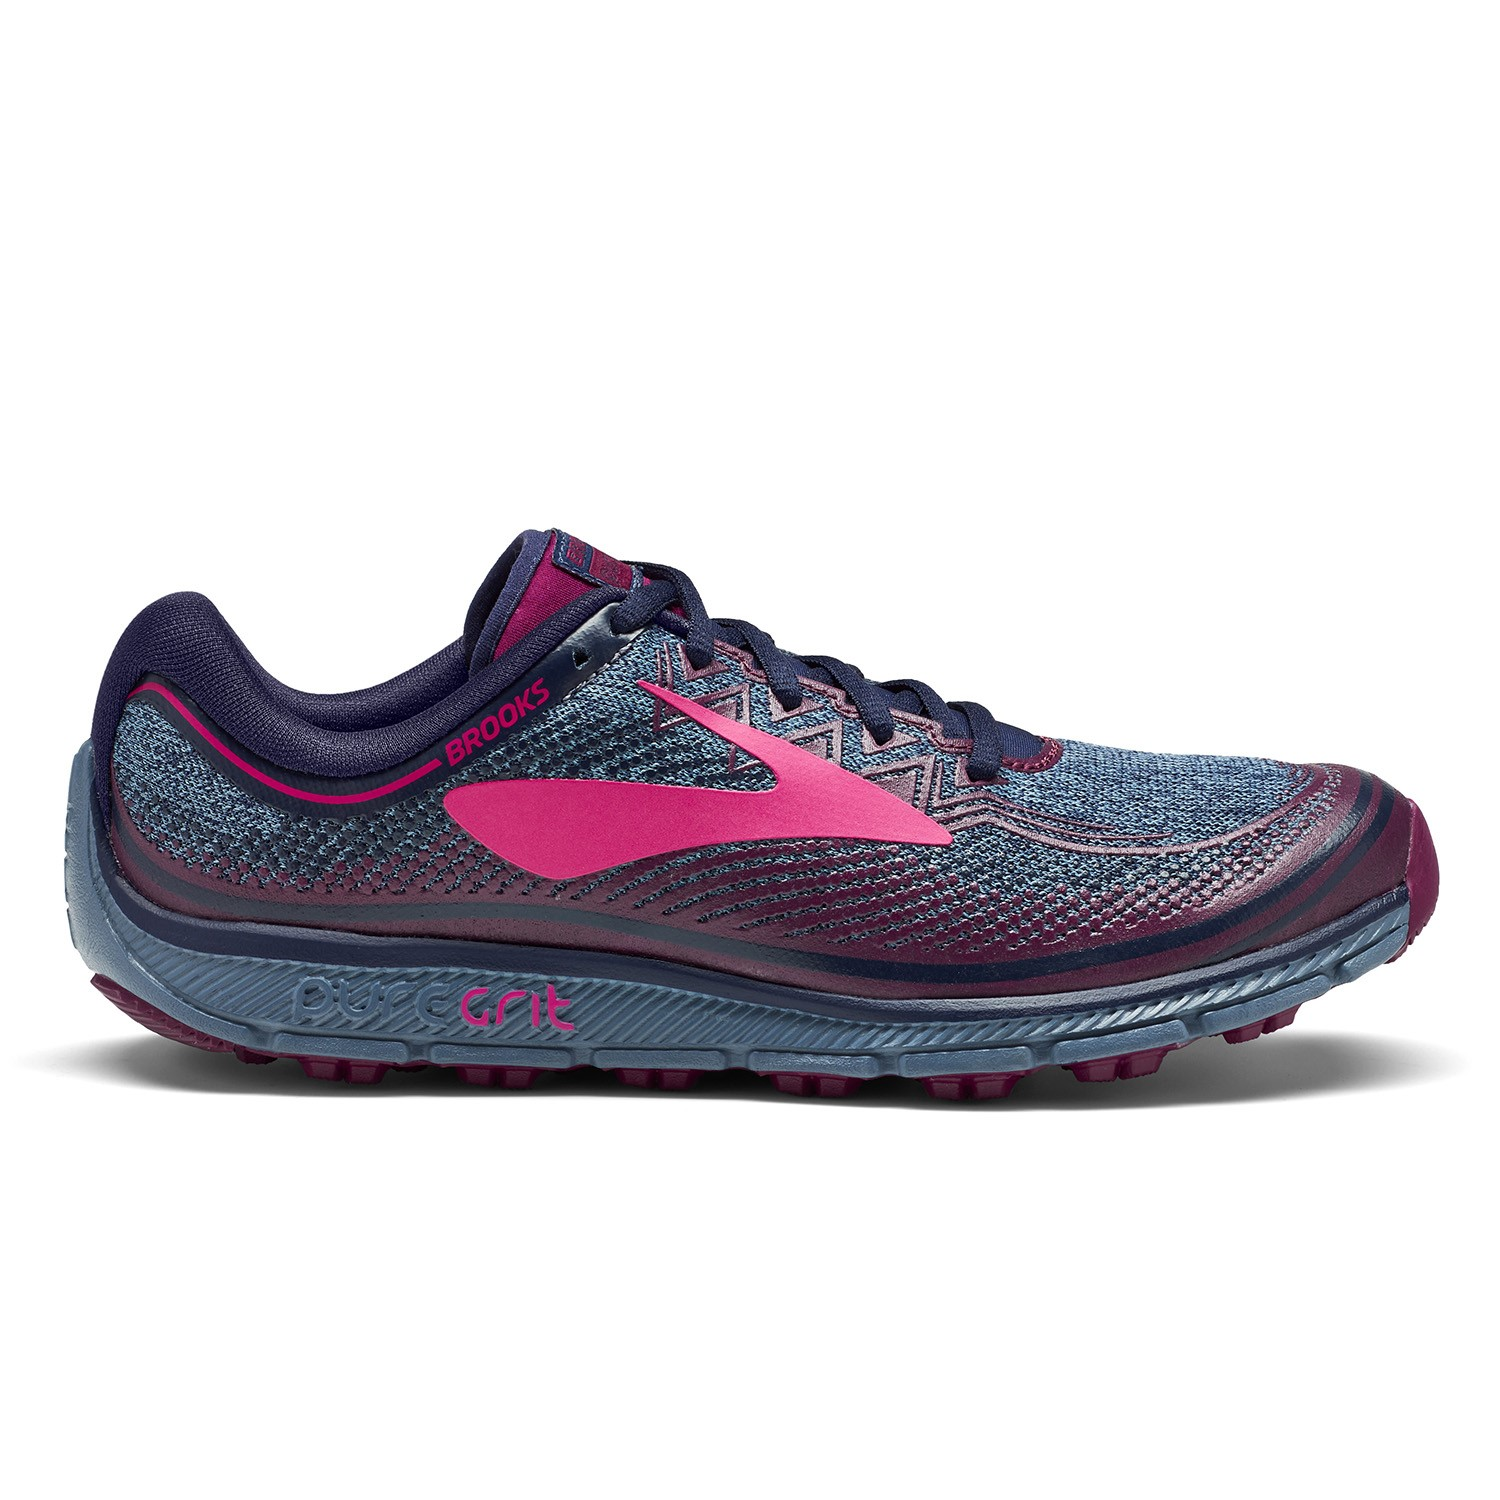 28076c1078a36 Brooks Pure Grit 6 - Womens Trail Running Shoes - Navy Plum Pink ...